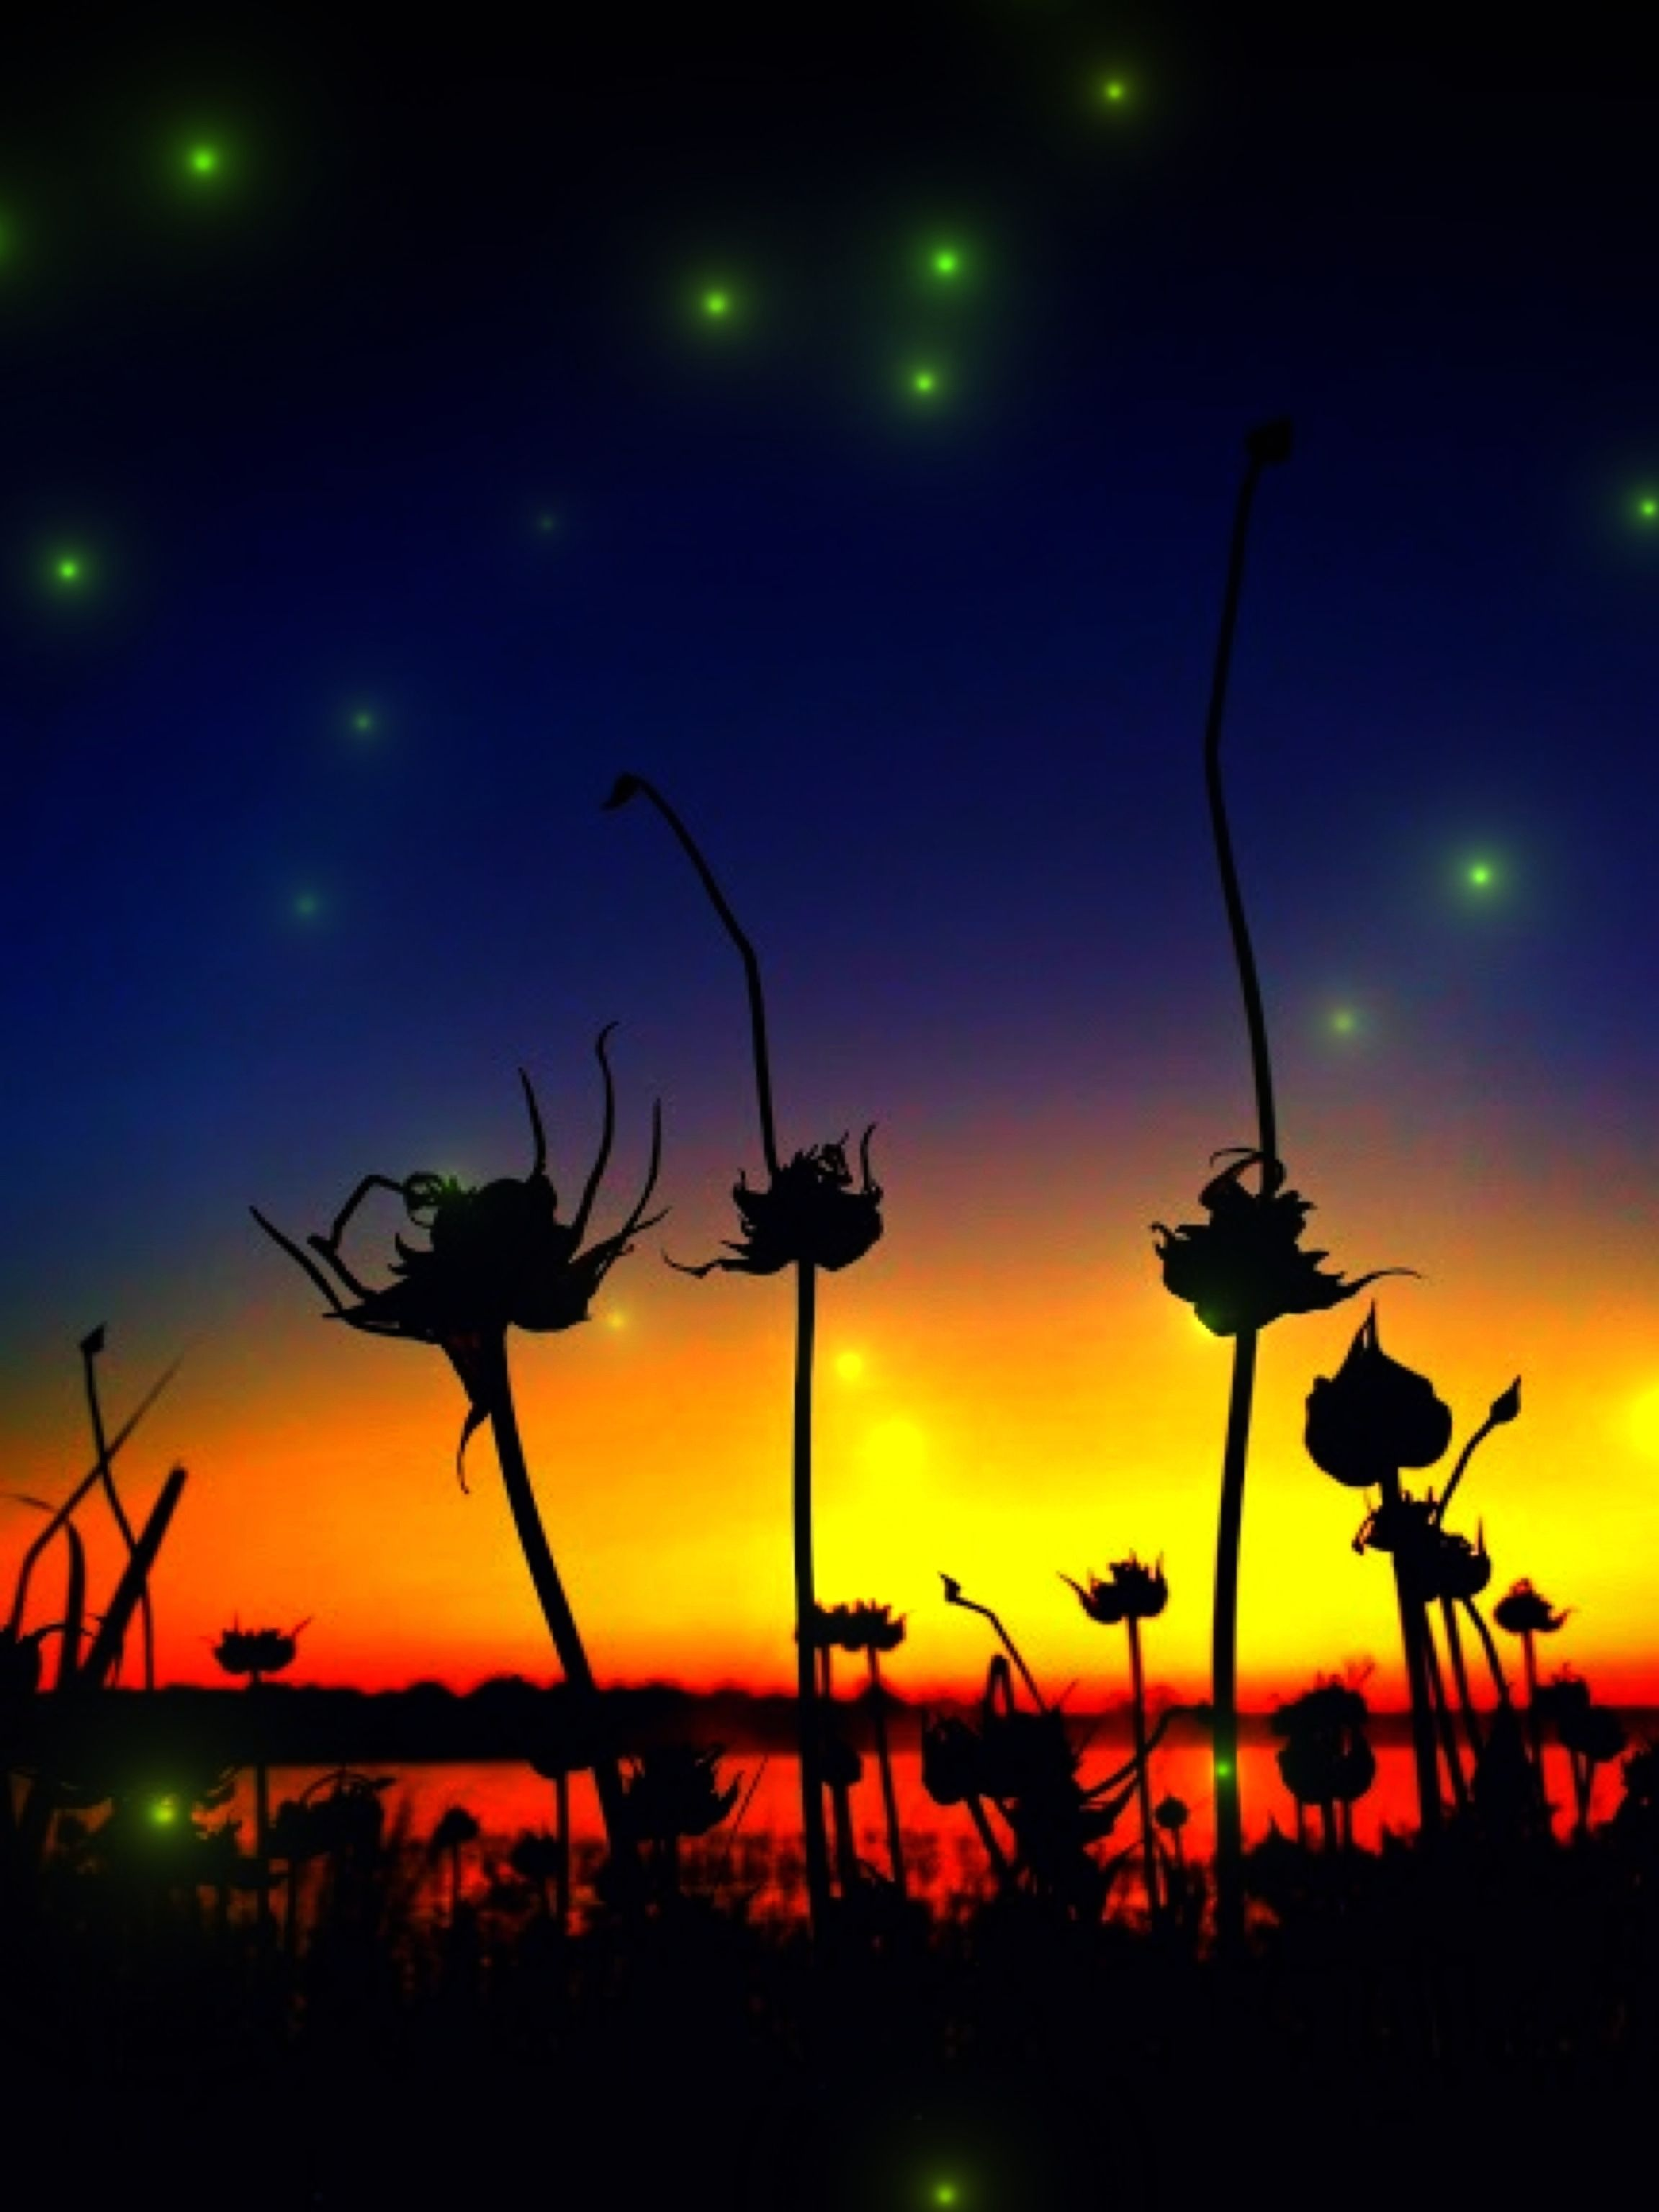 Black Orchids and fireflies after sunset